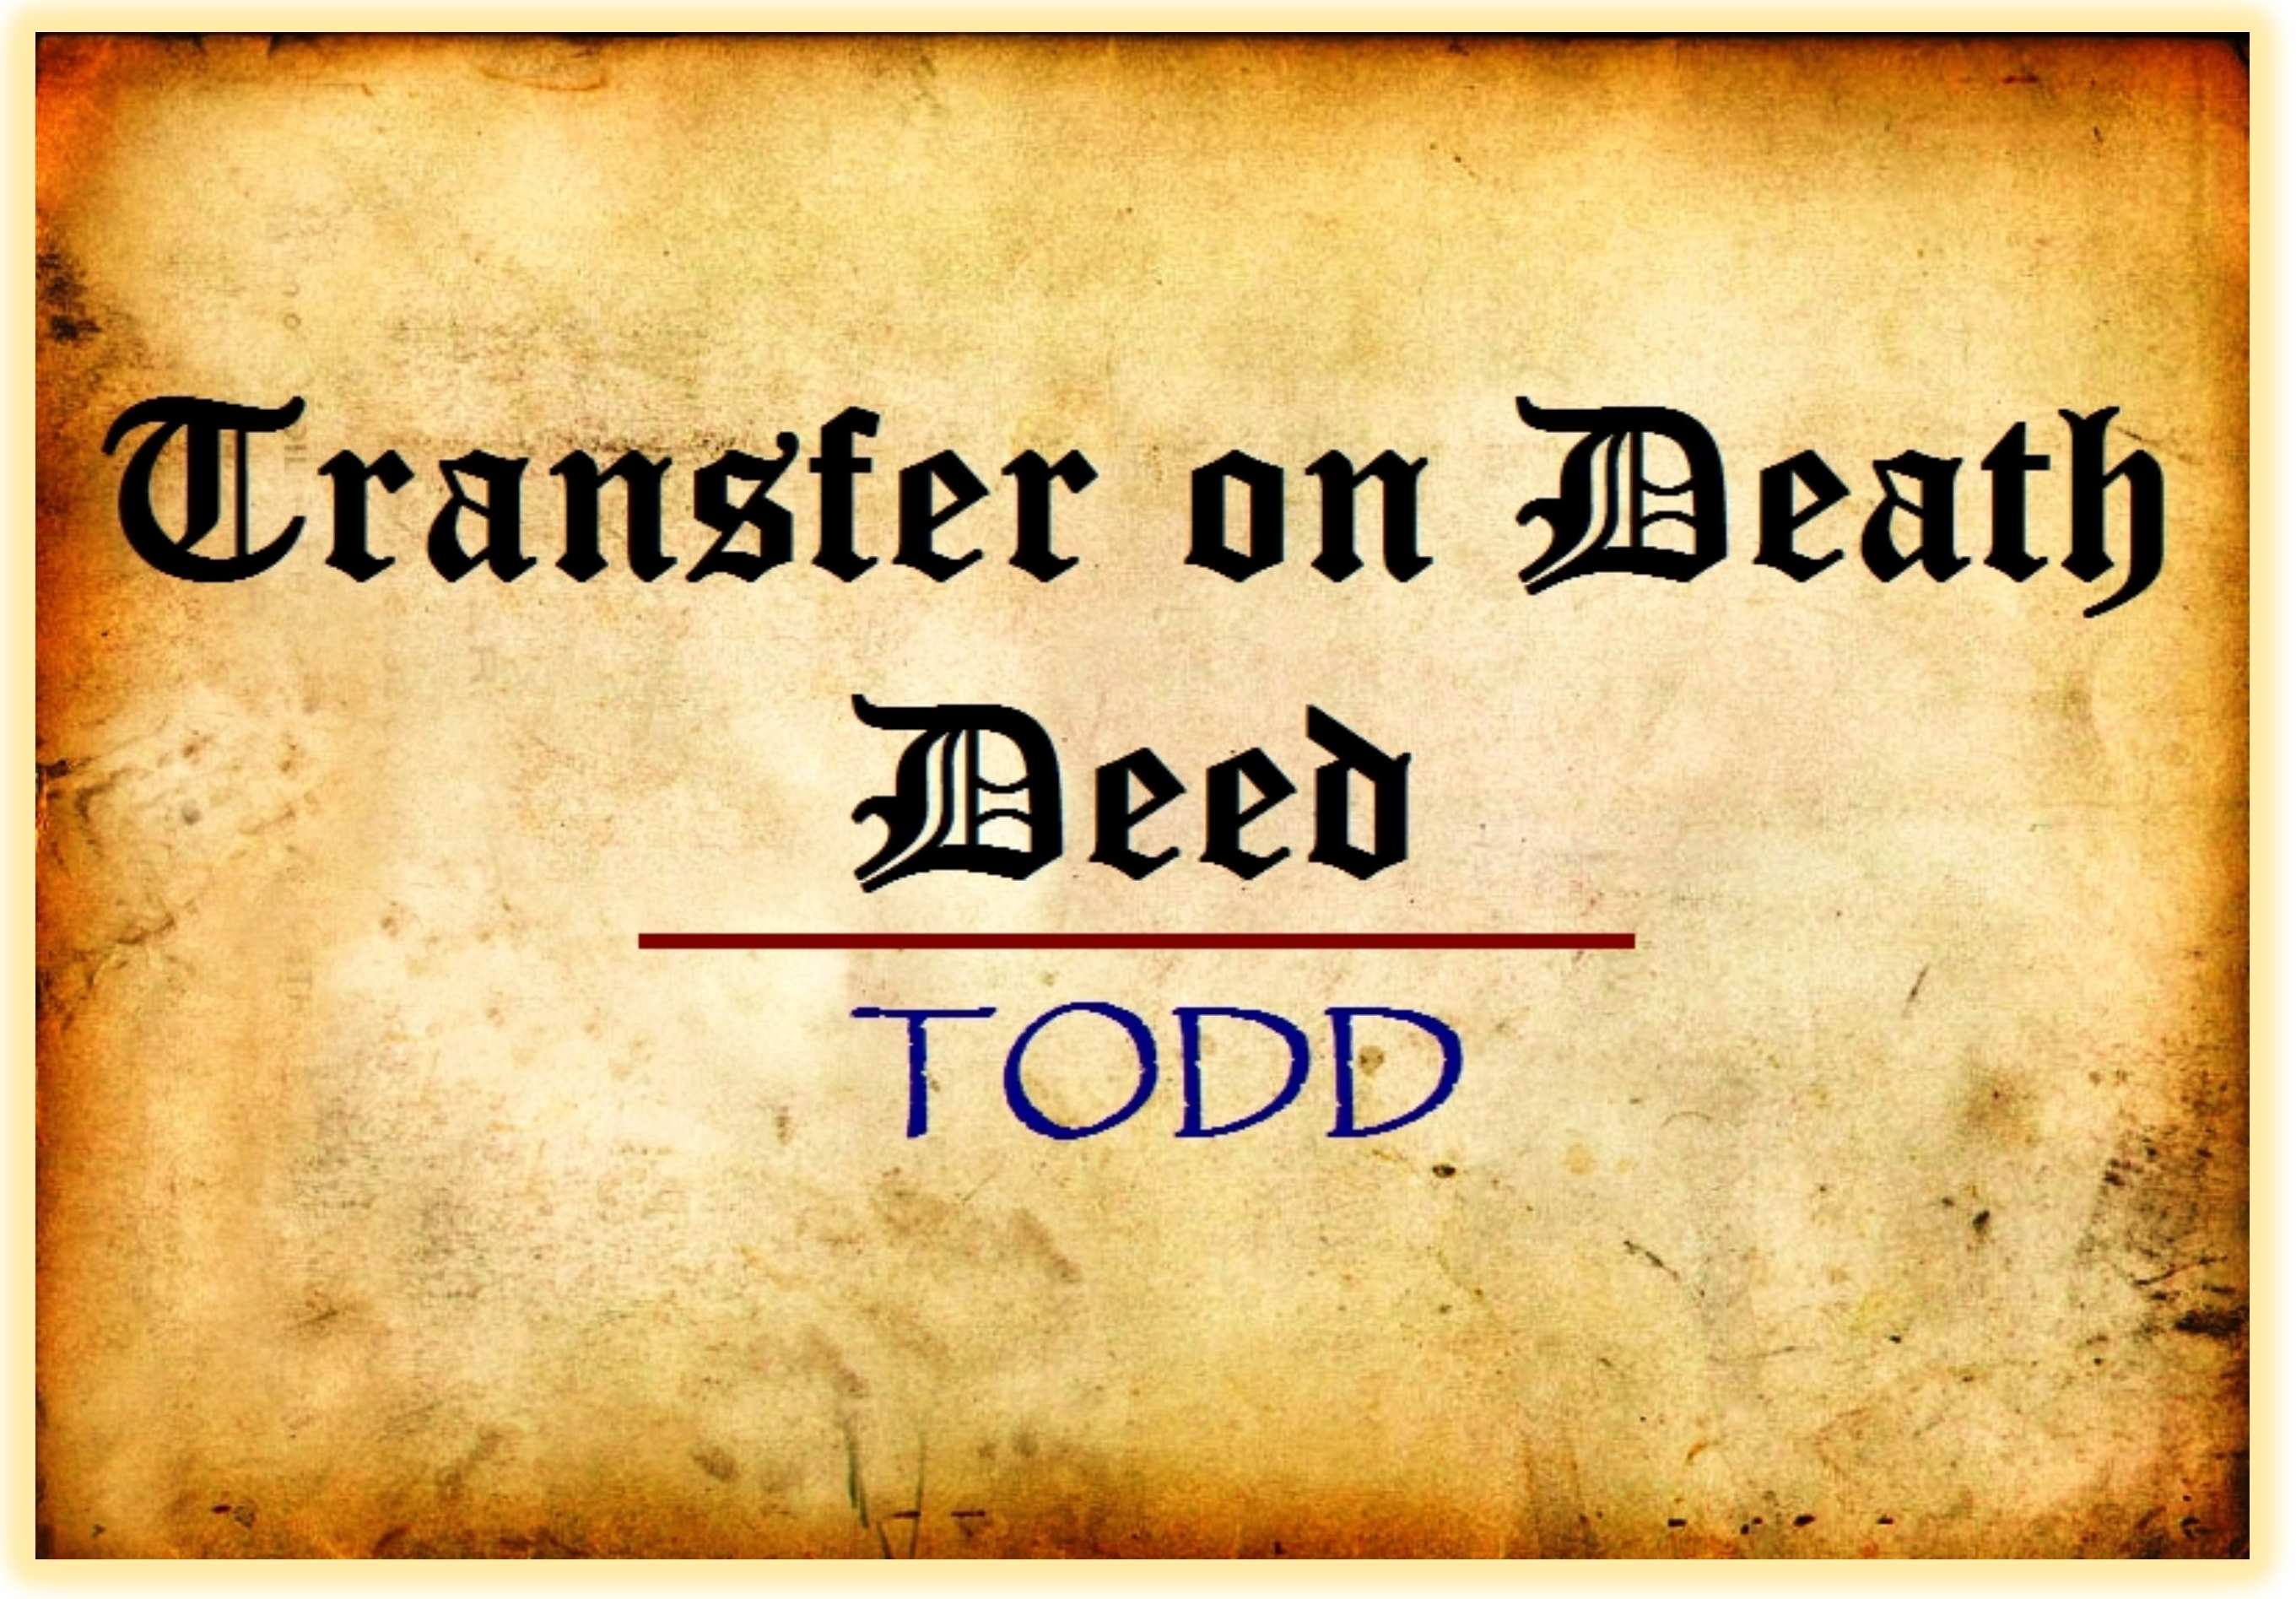 transfer on death deed - 03ecropped